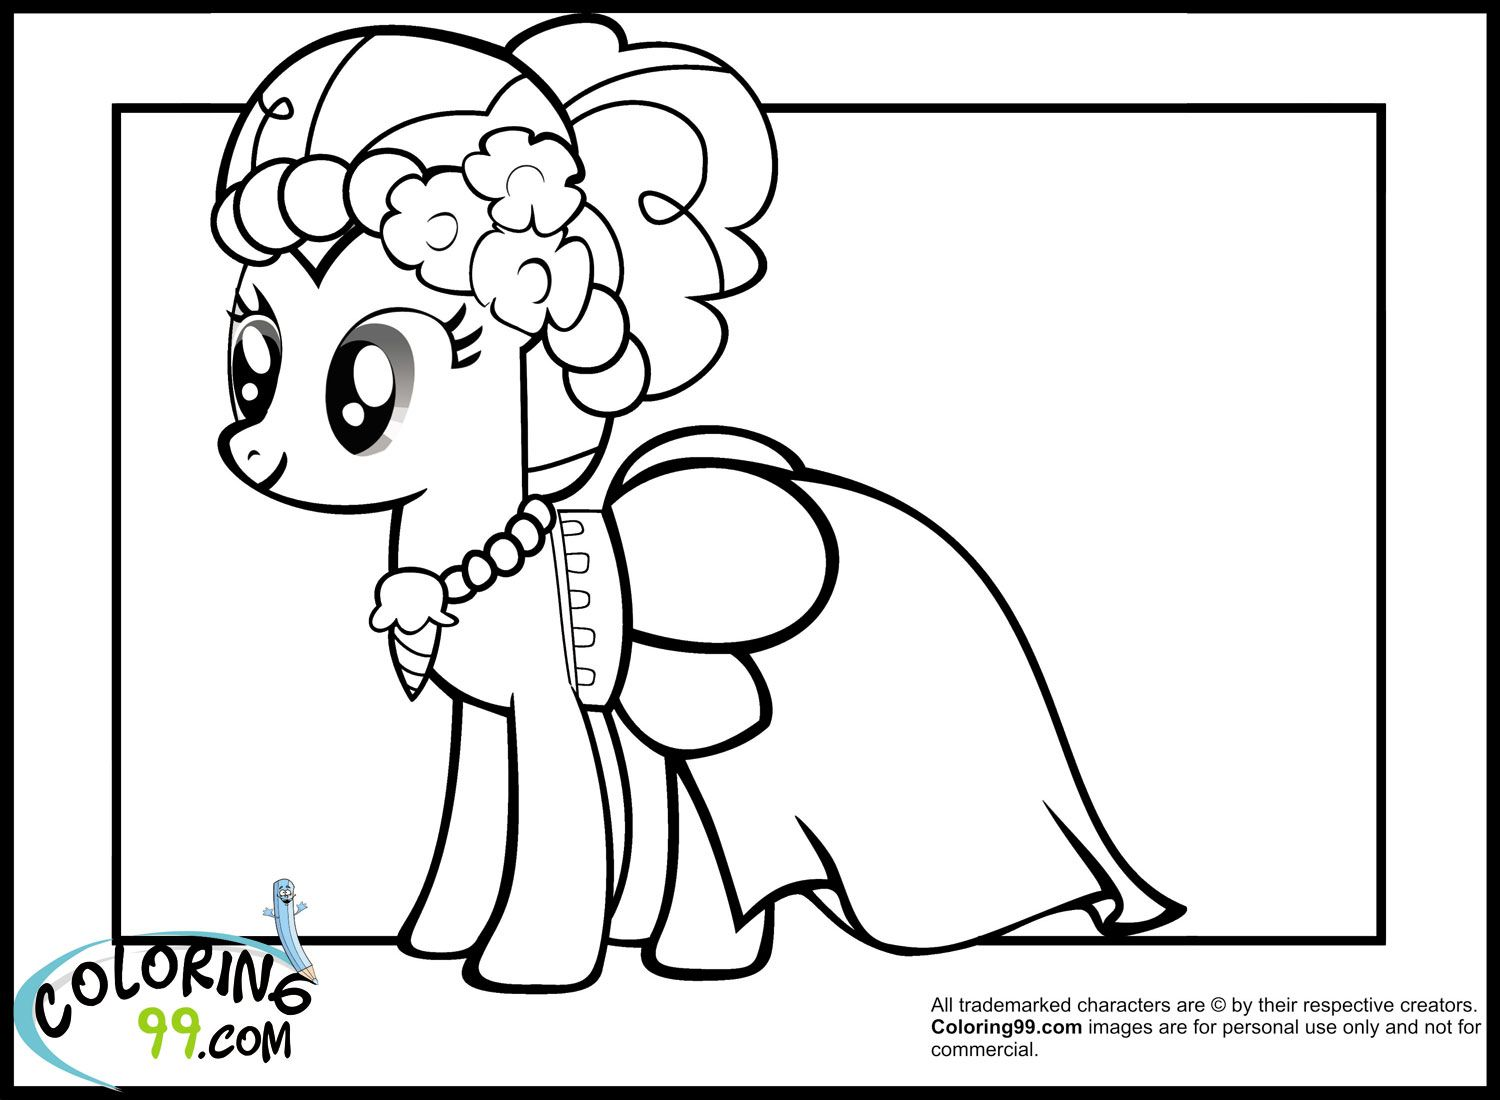 My little pony coloring pages rarity in dress - Pinkie Pie Coloring Pages For Kids Jpg 1500